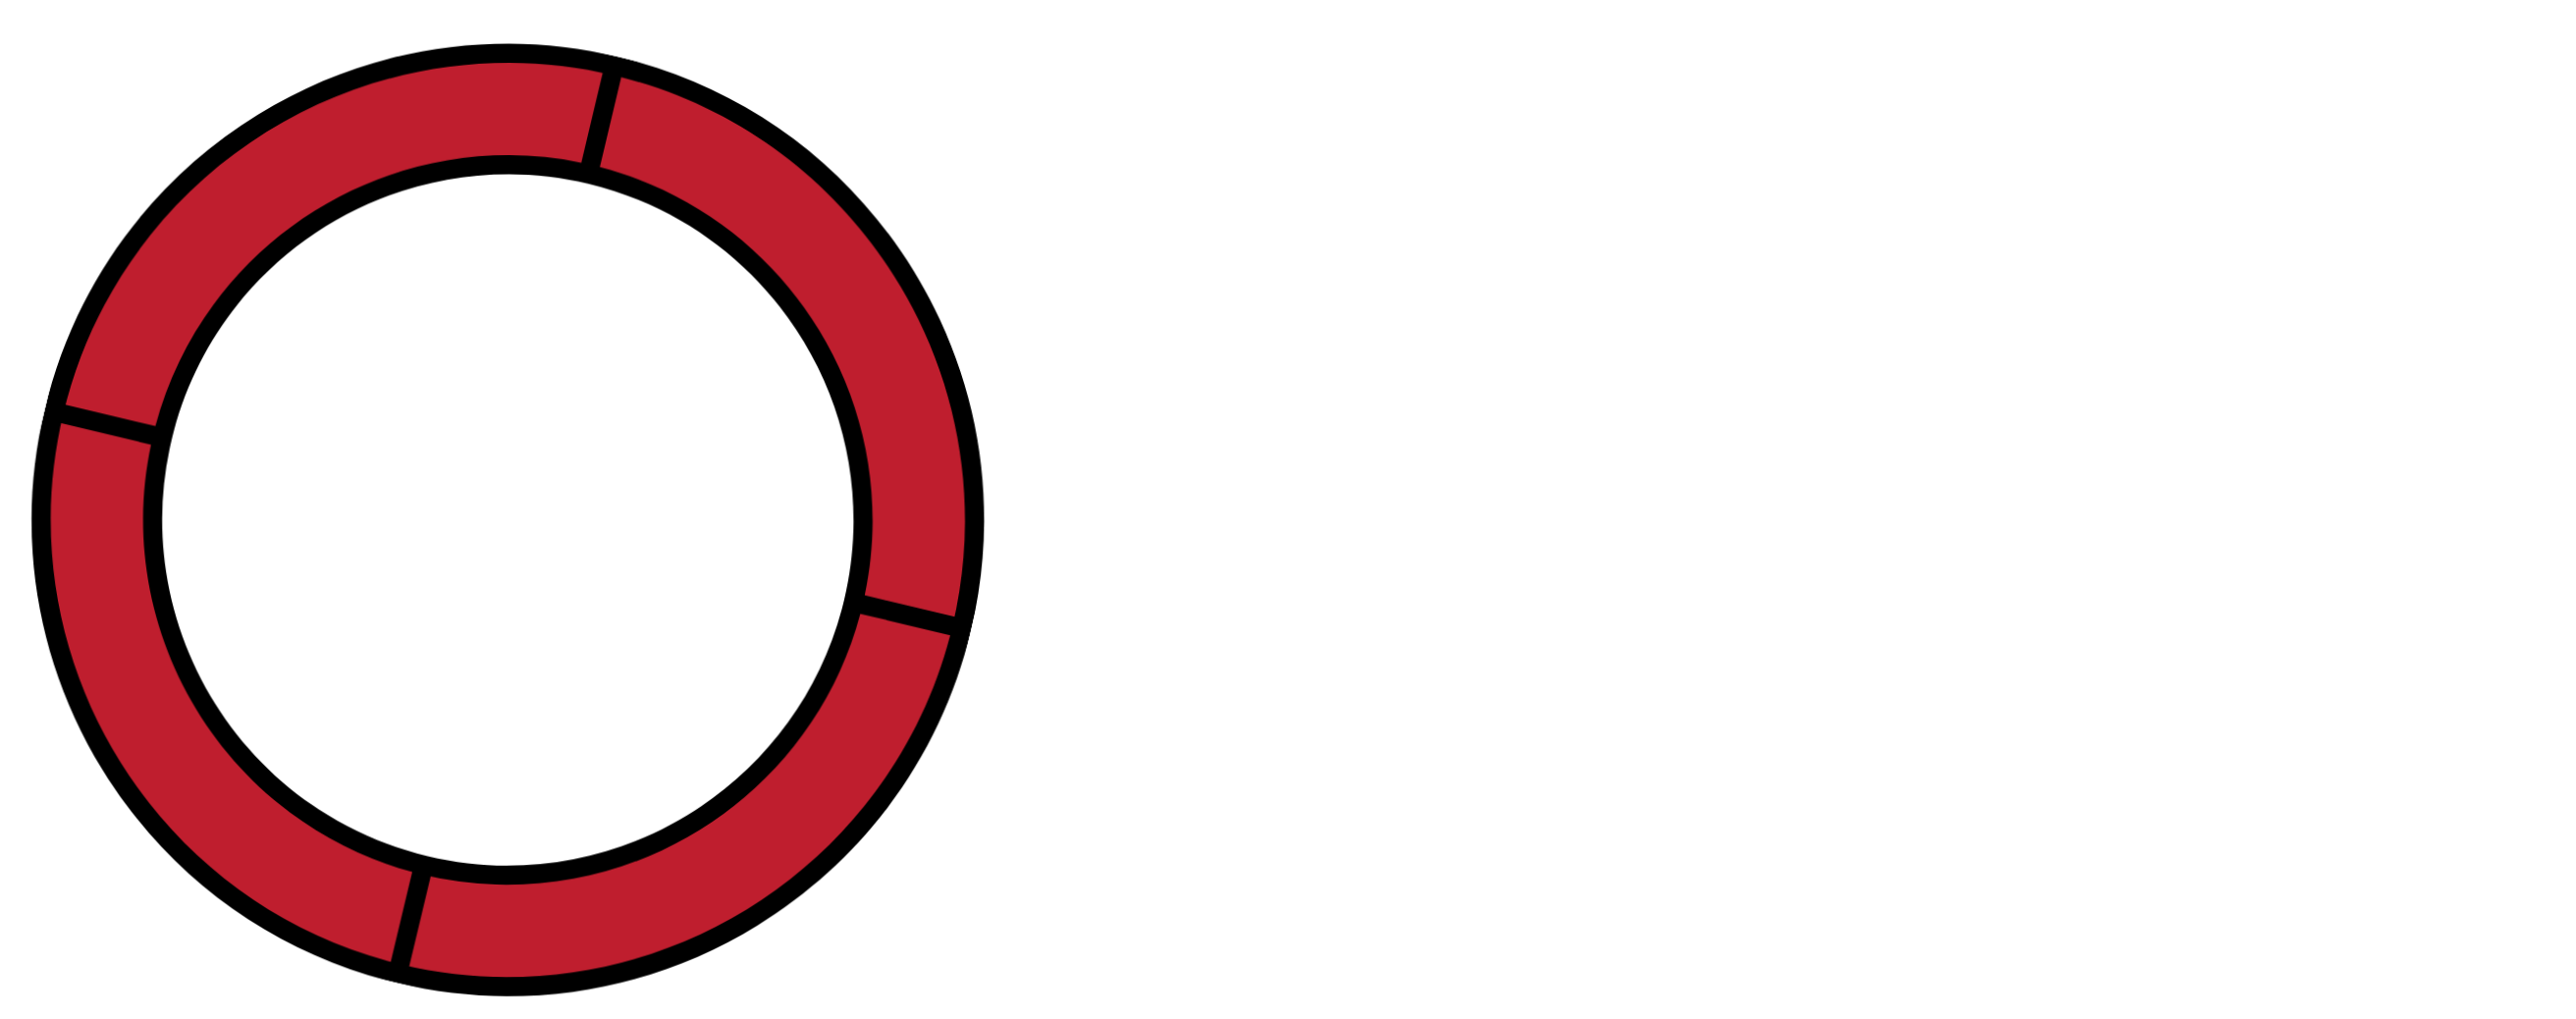 New World Recruitment